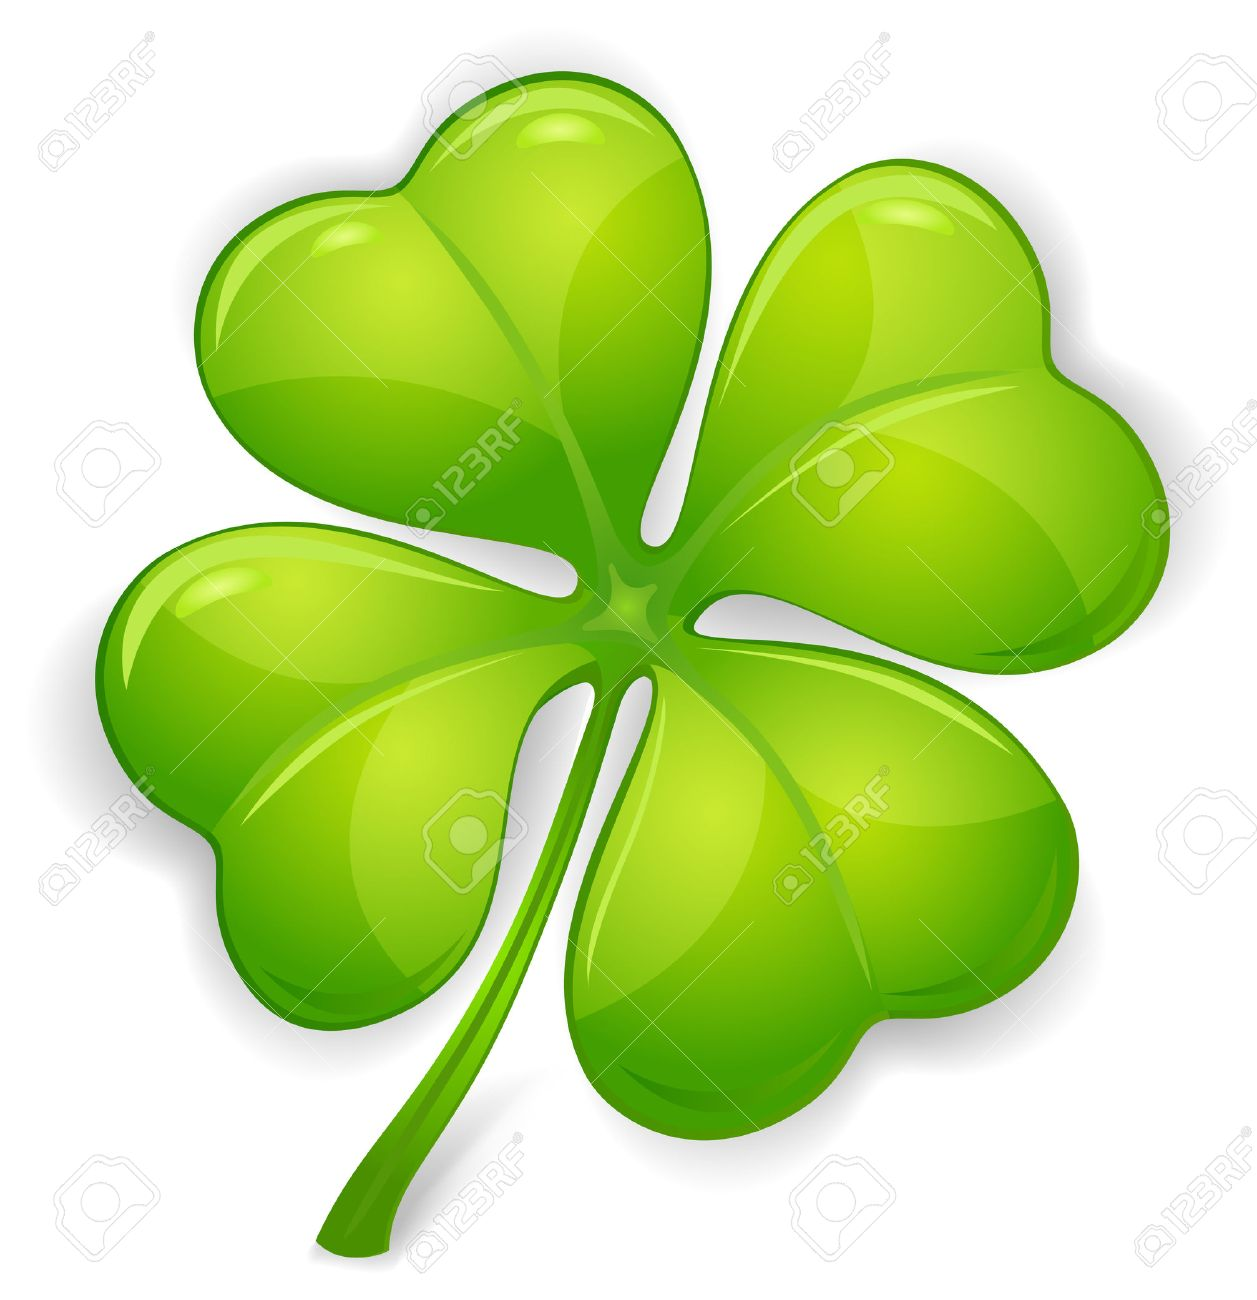 1257x1300 Four Leaf Clover Isolated On White, Vector Illustration For St